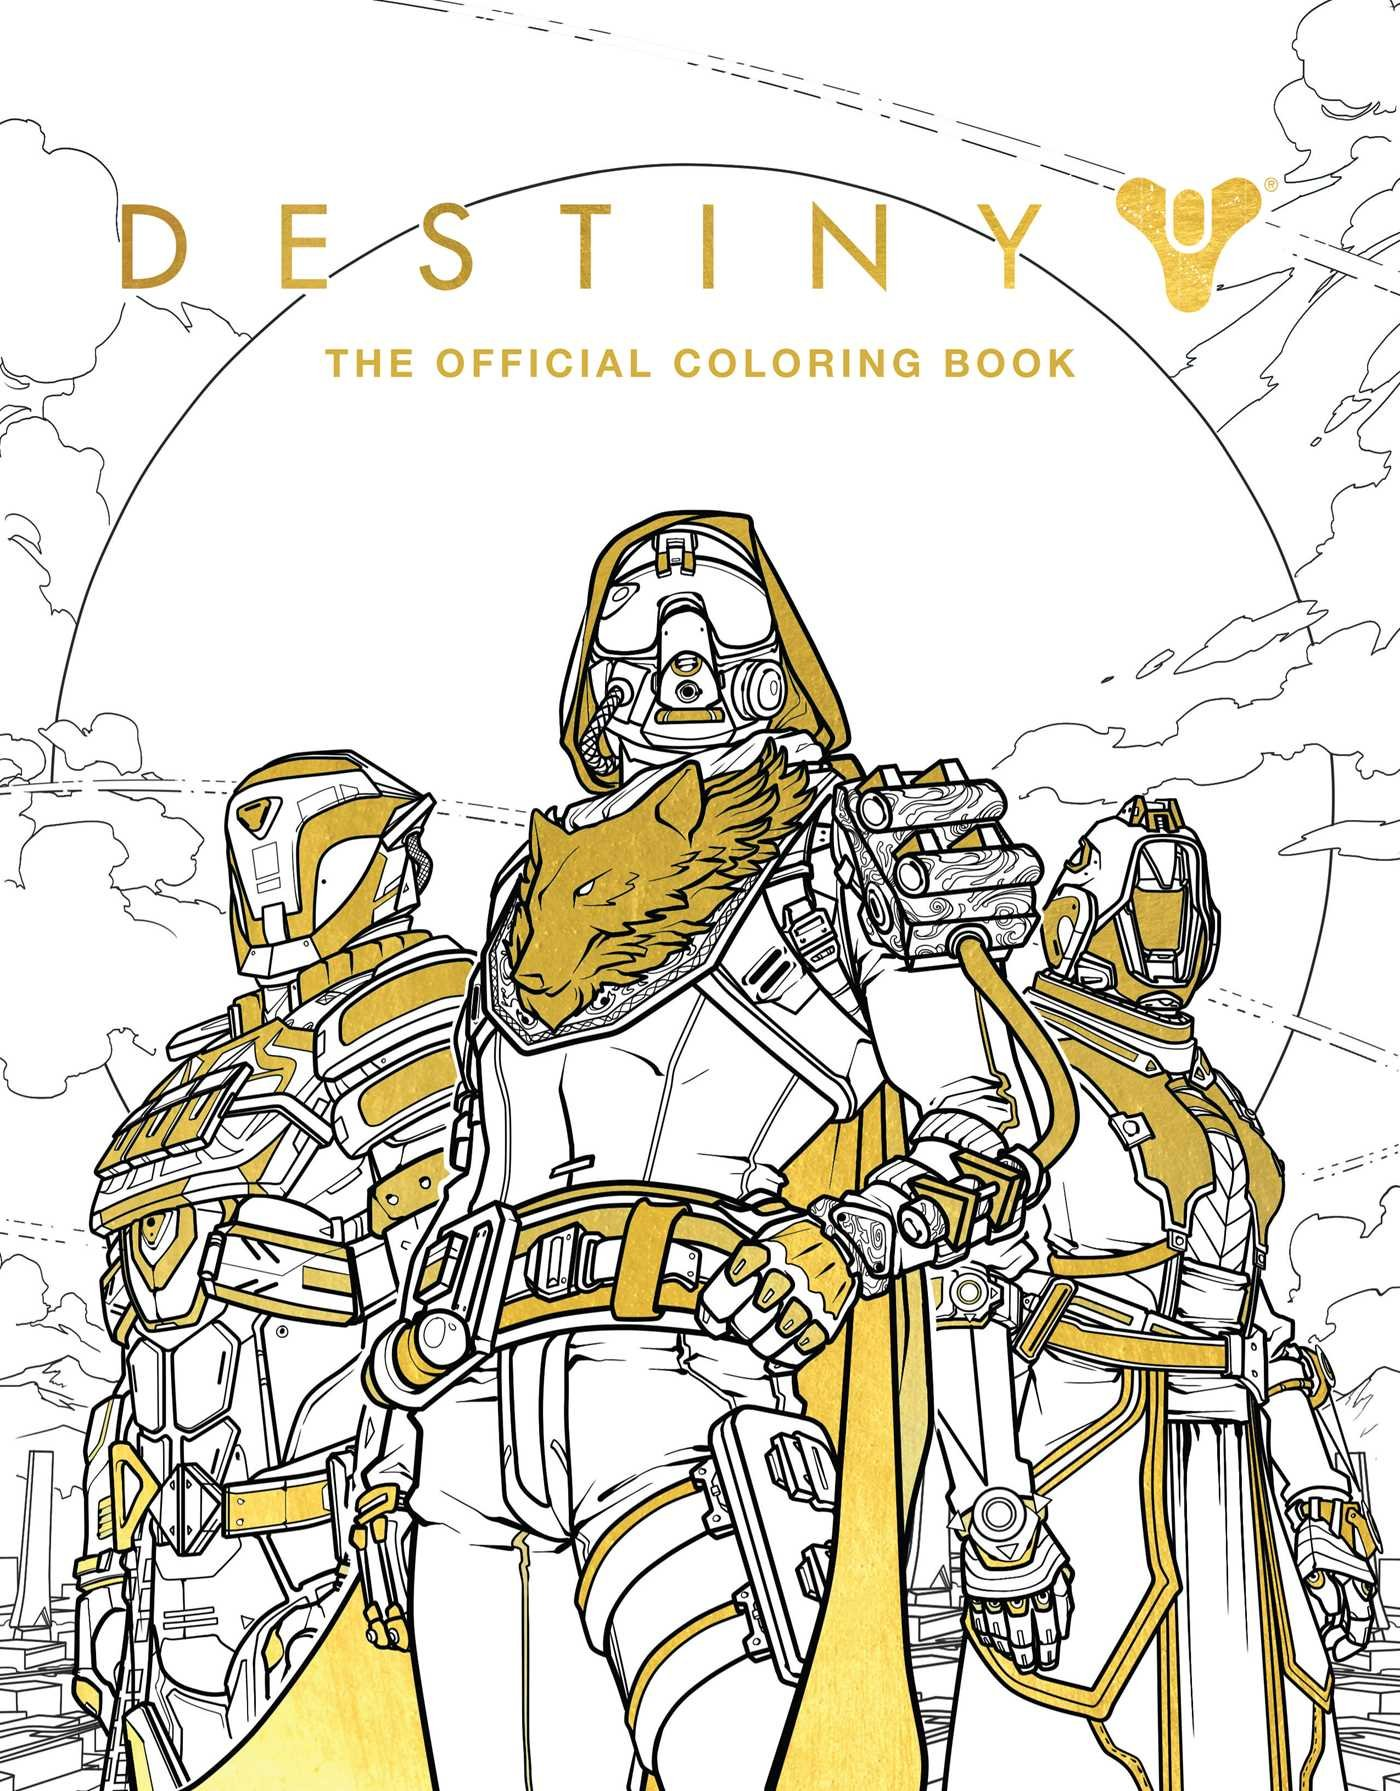 Coloring book download zip - Amazon Com Destiny The Official Coloring Book 9781608879229 Bungie Ze Carlos Books